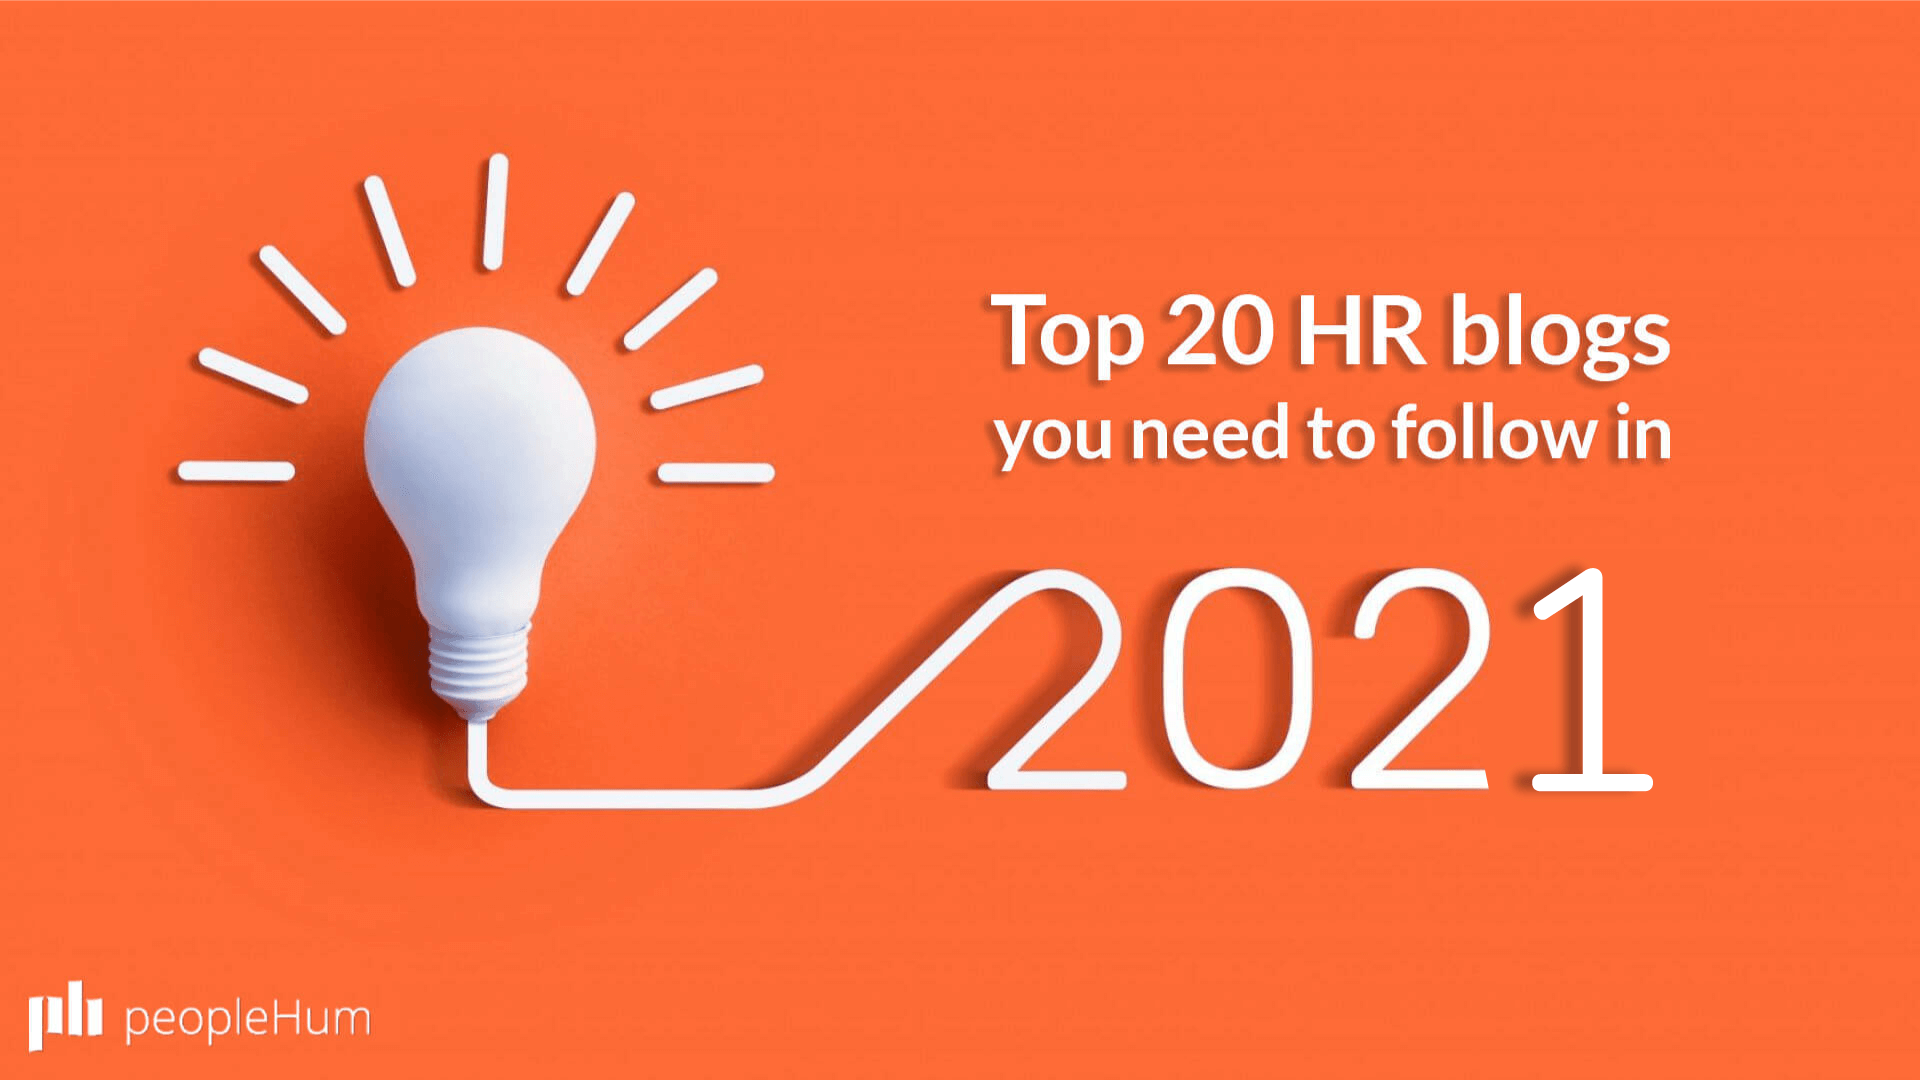 Top 20 HR Blogs You Must Follow in 2021